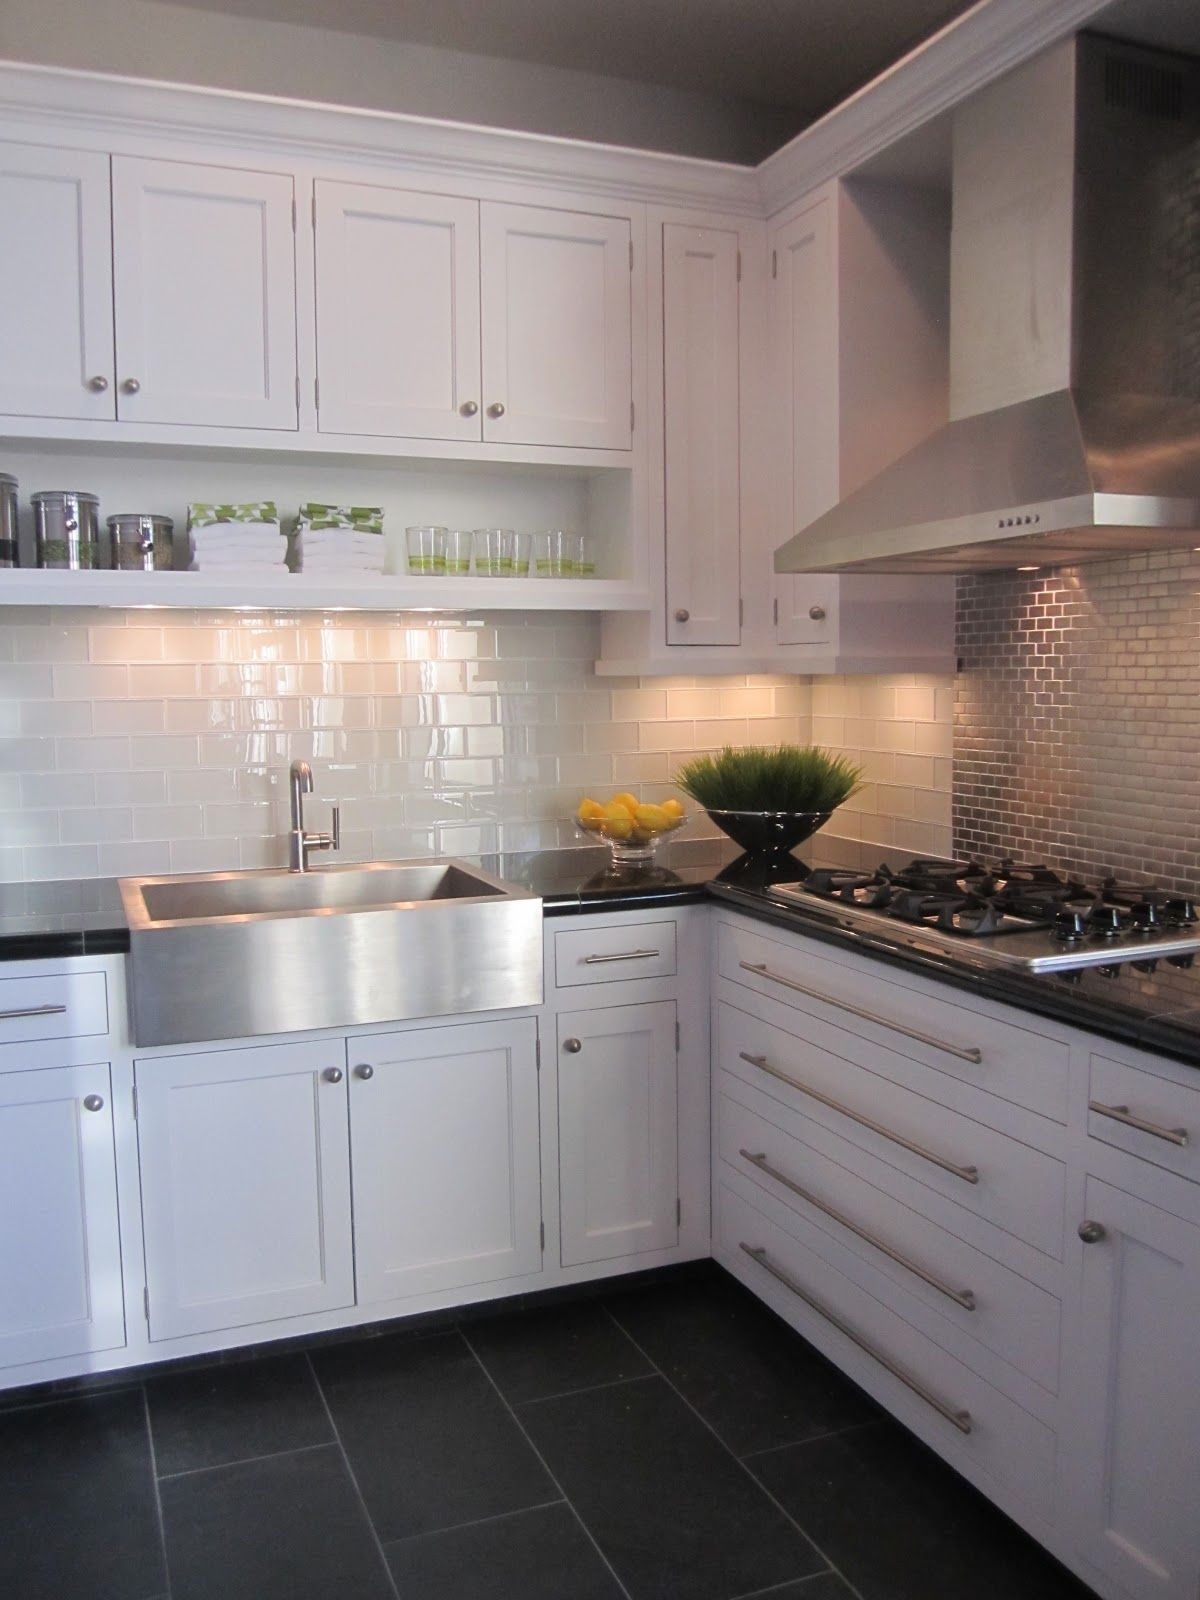 gray kitchen floor kitchen floor tile kitchen white cabinet dark grey floor tiles kitchen white cabinet dark grey floor tiles Stuff